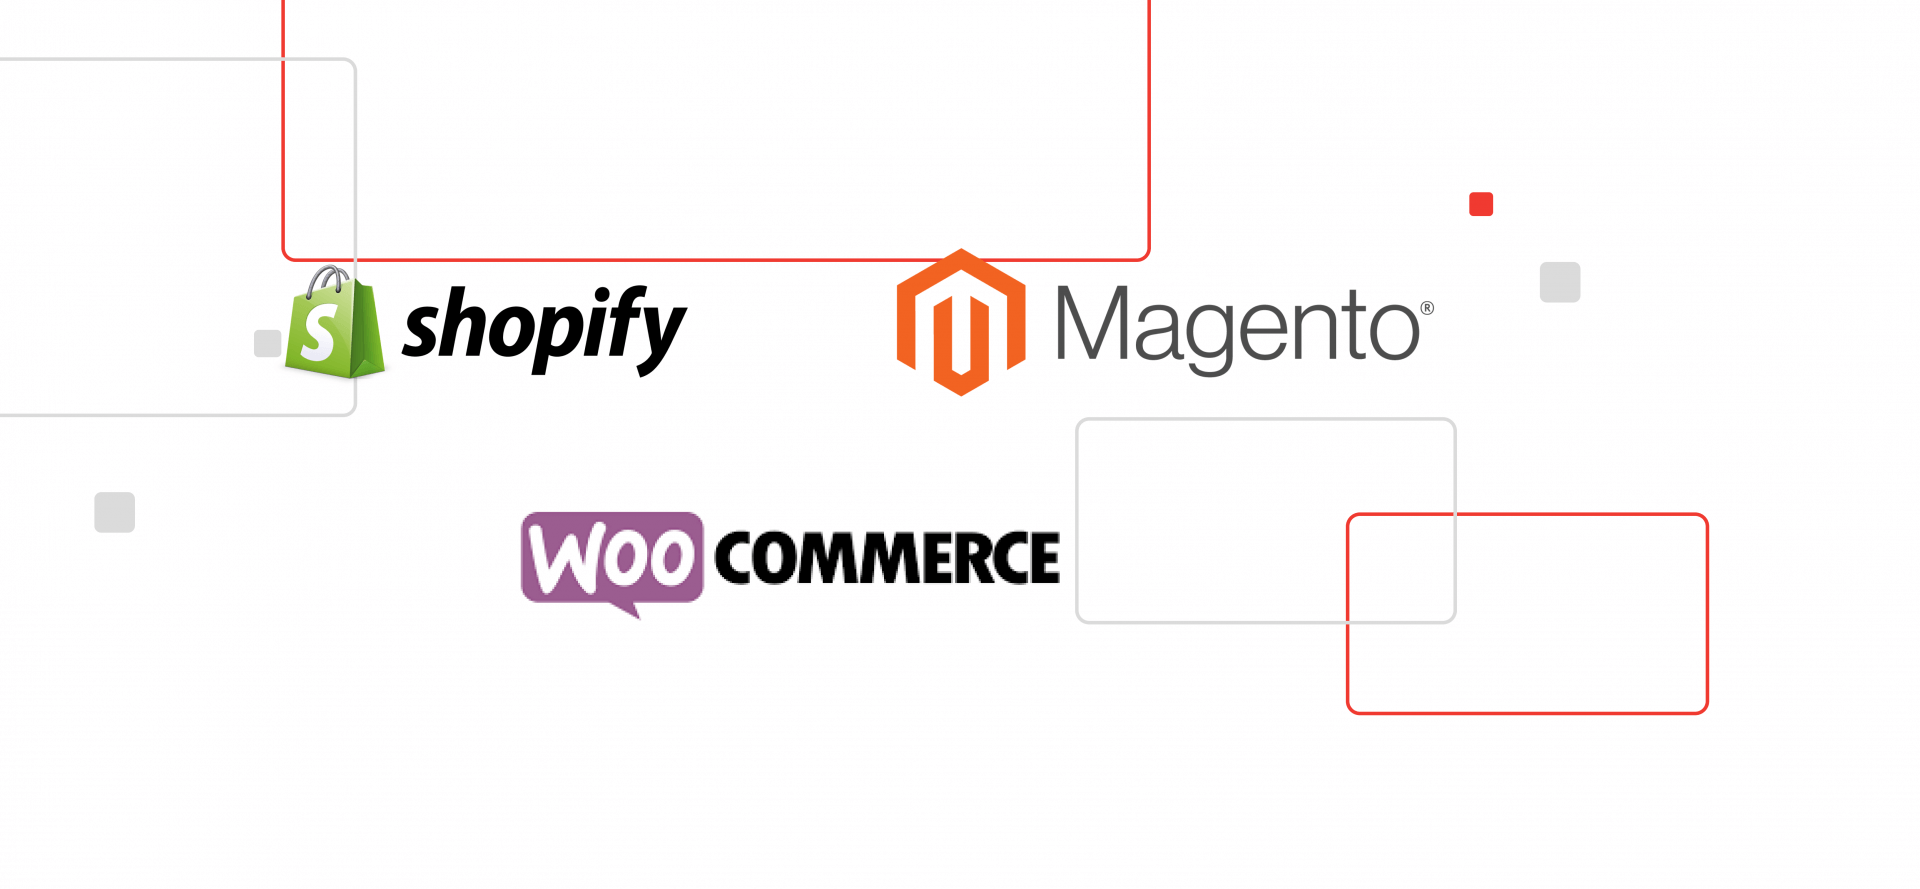 Woocommerce, Magento, and Shopify: What Is the Difference Between the Platforms?